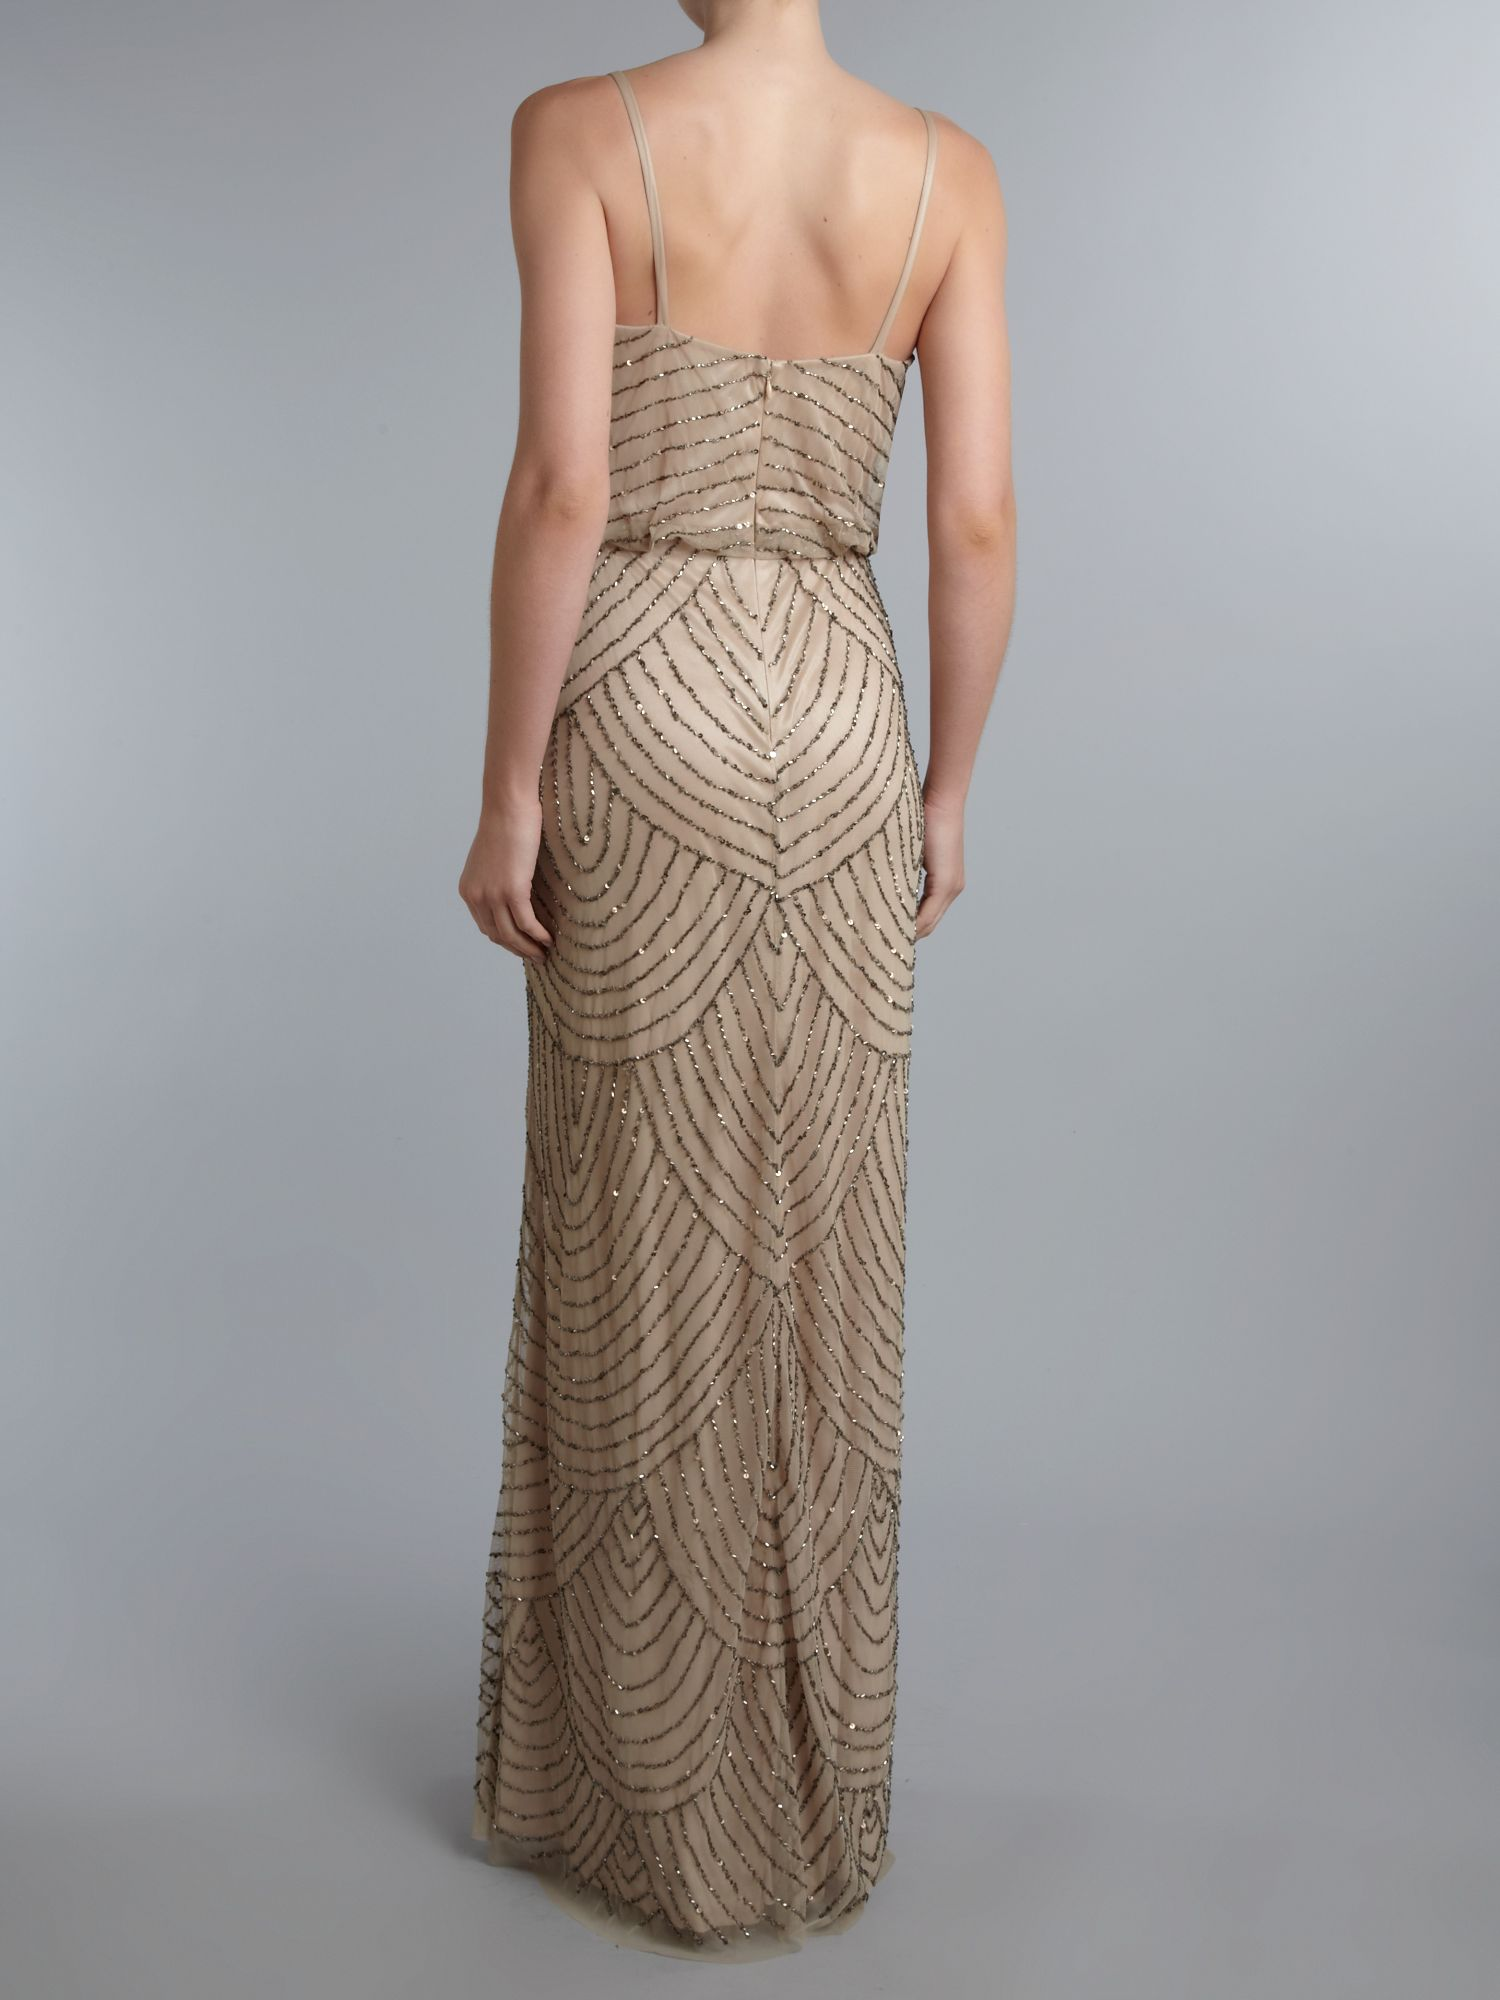 Adrianna papell Art Deco Beaded Dress in Brown